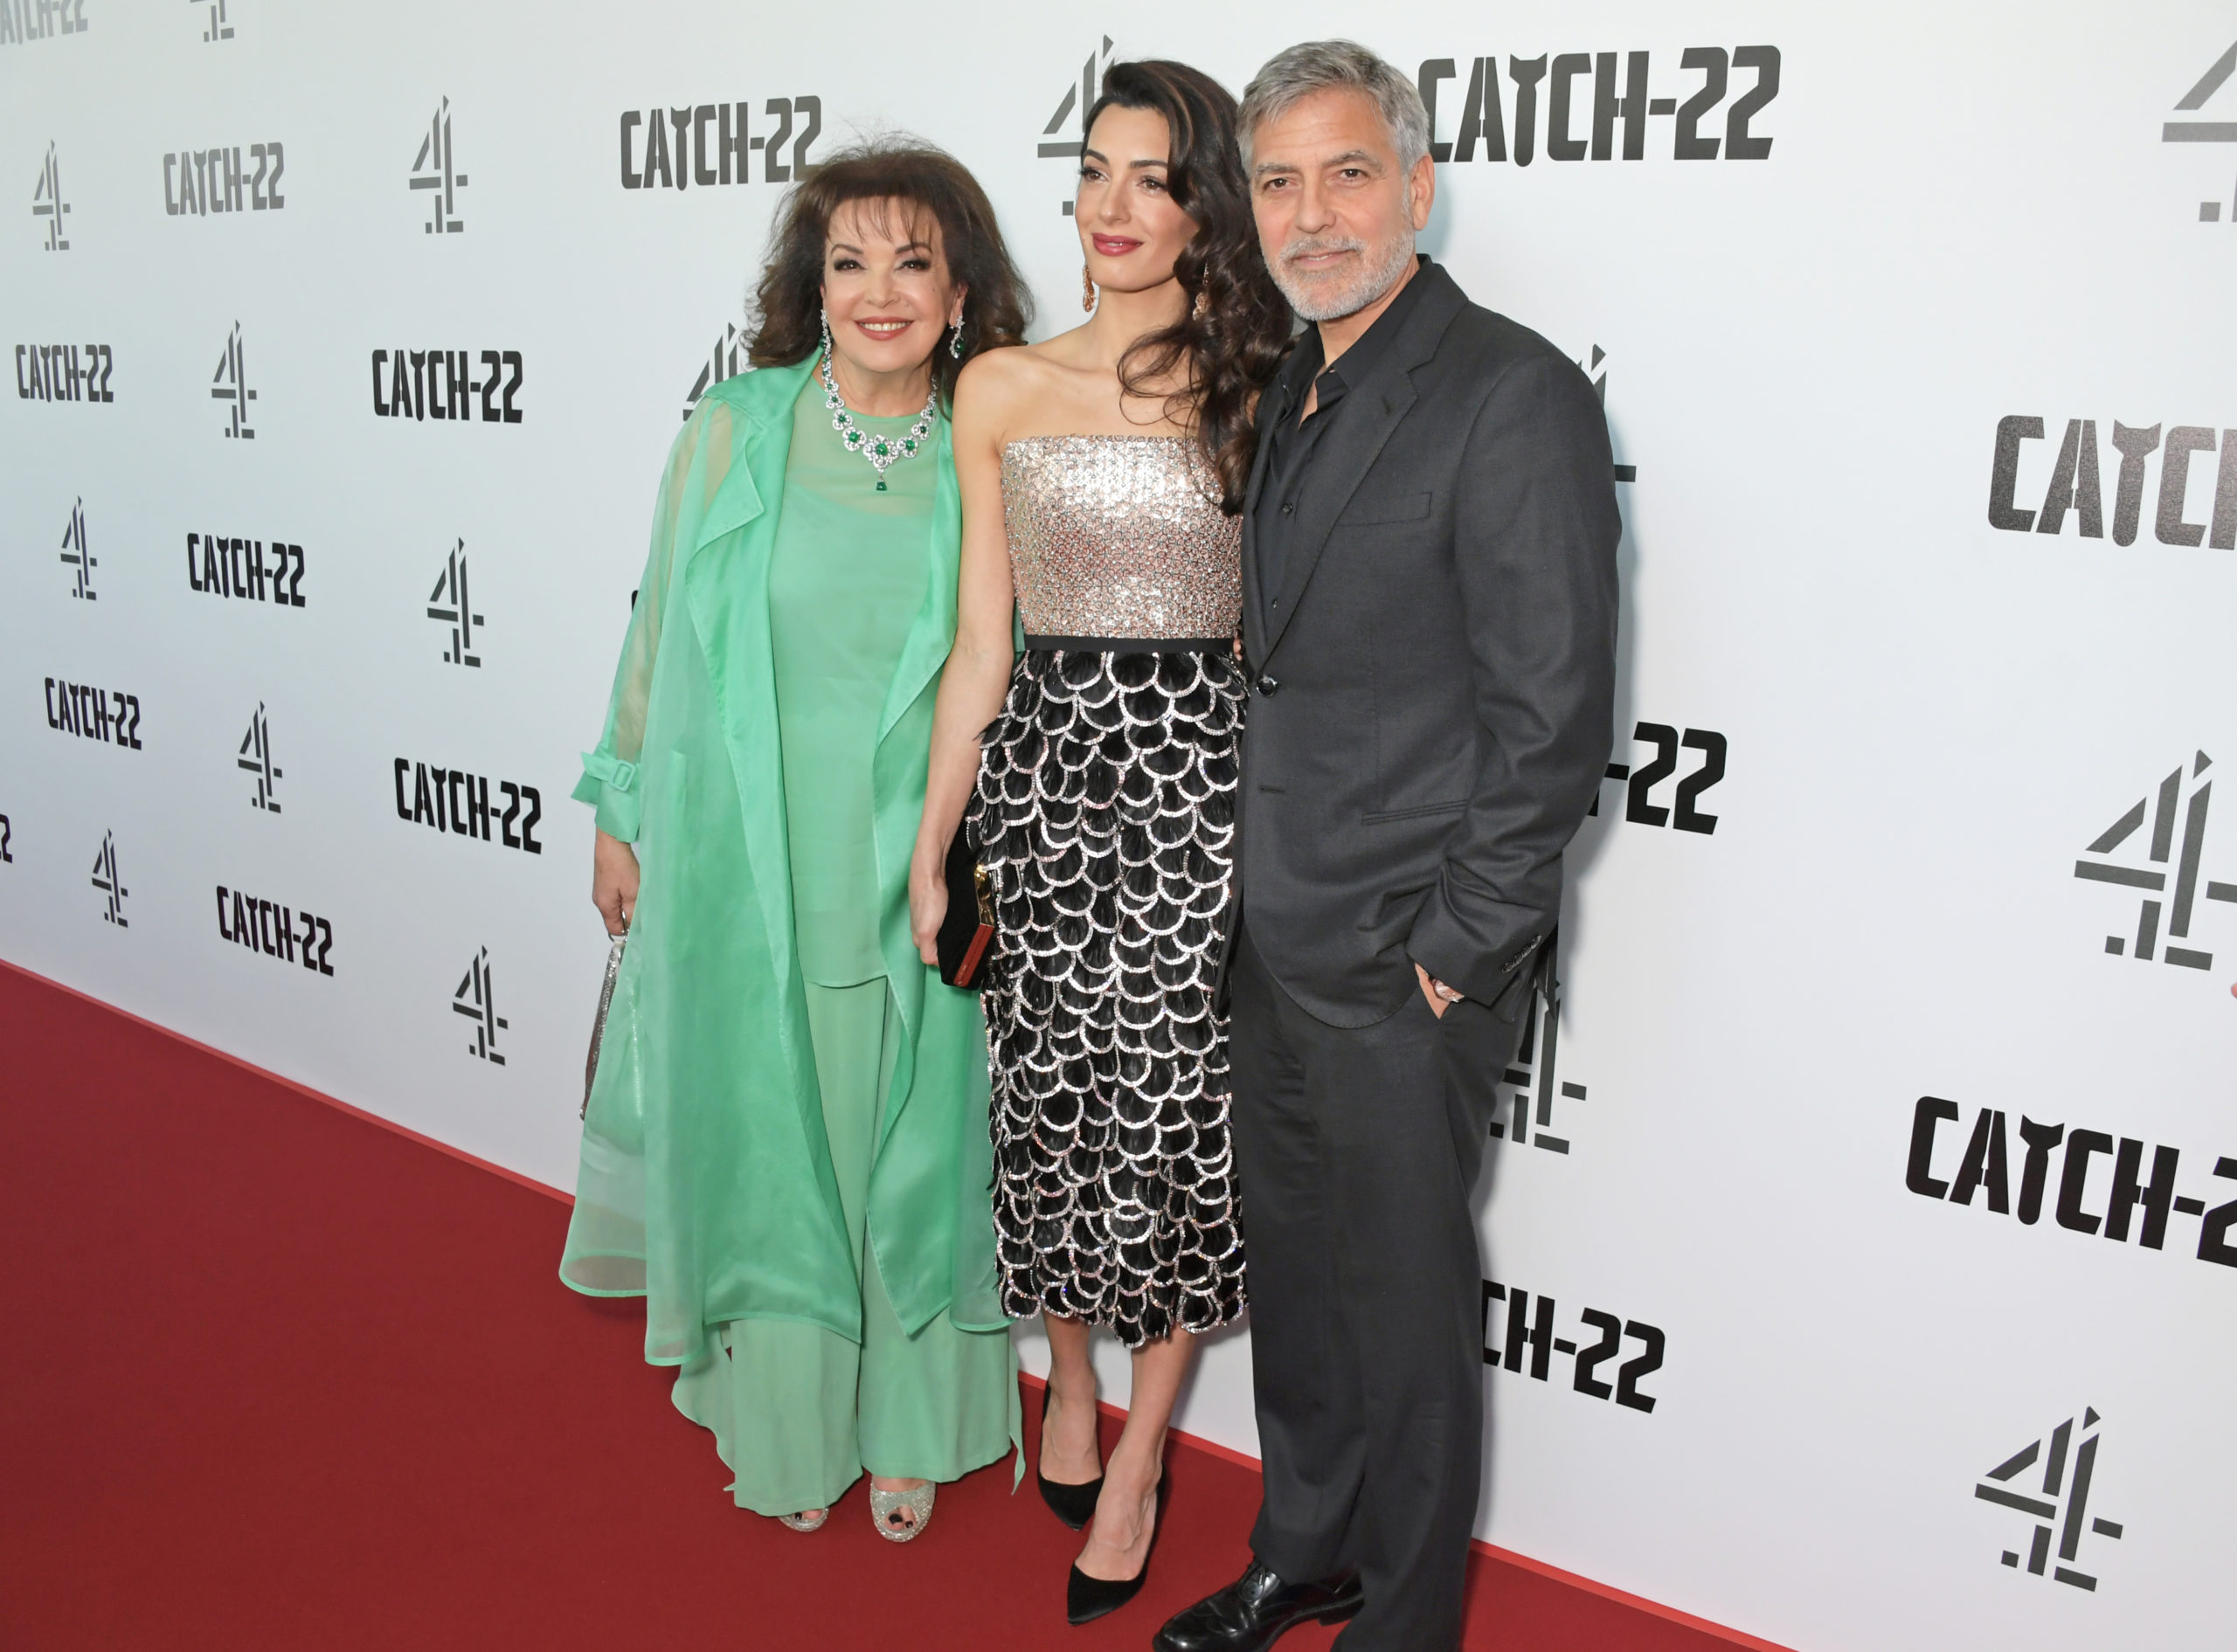 George Clooney sul red carpet con la suocera